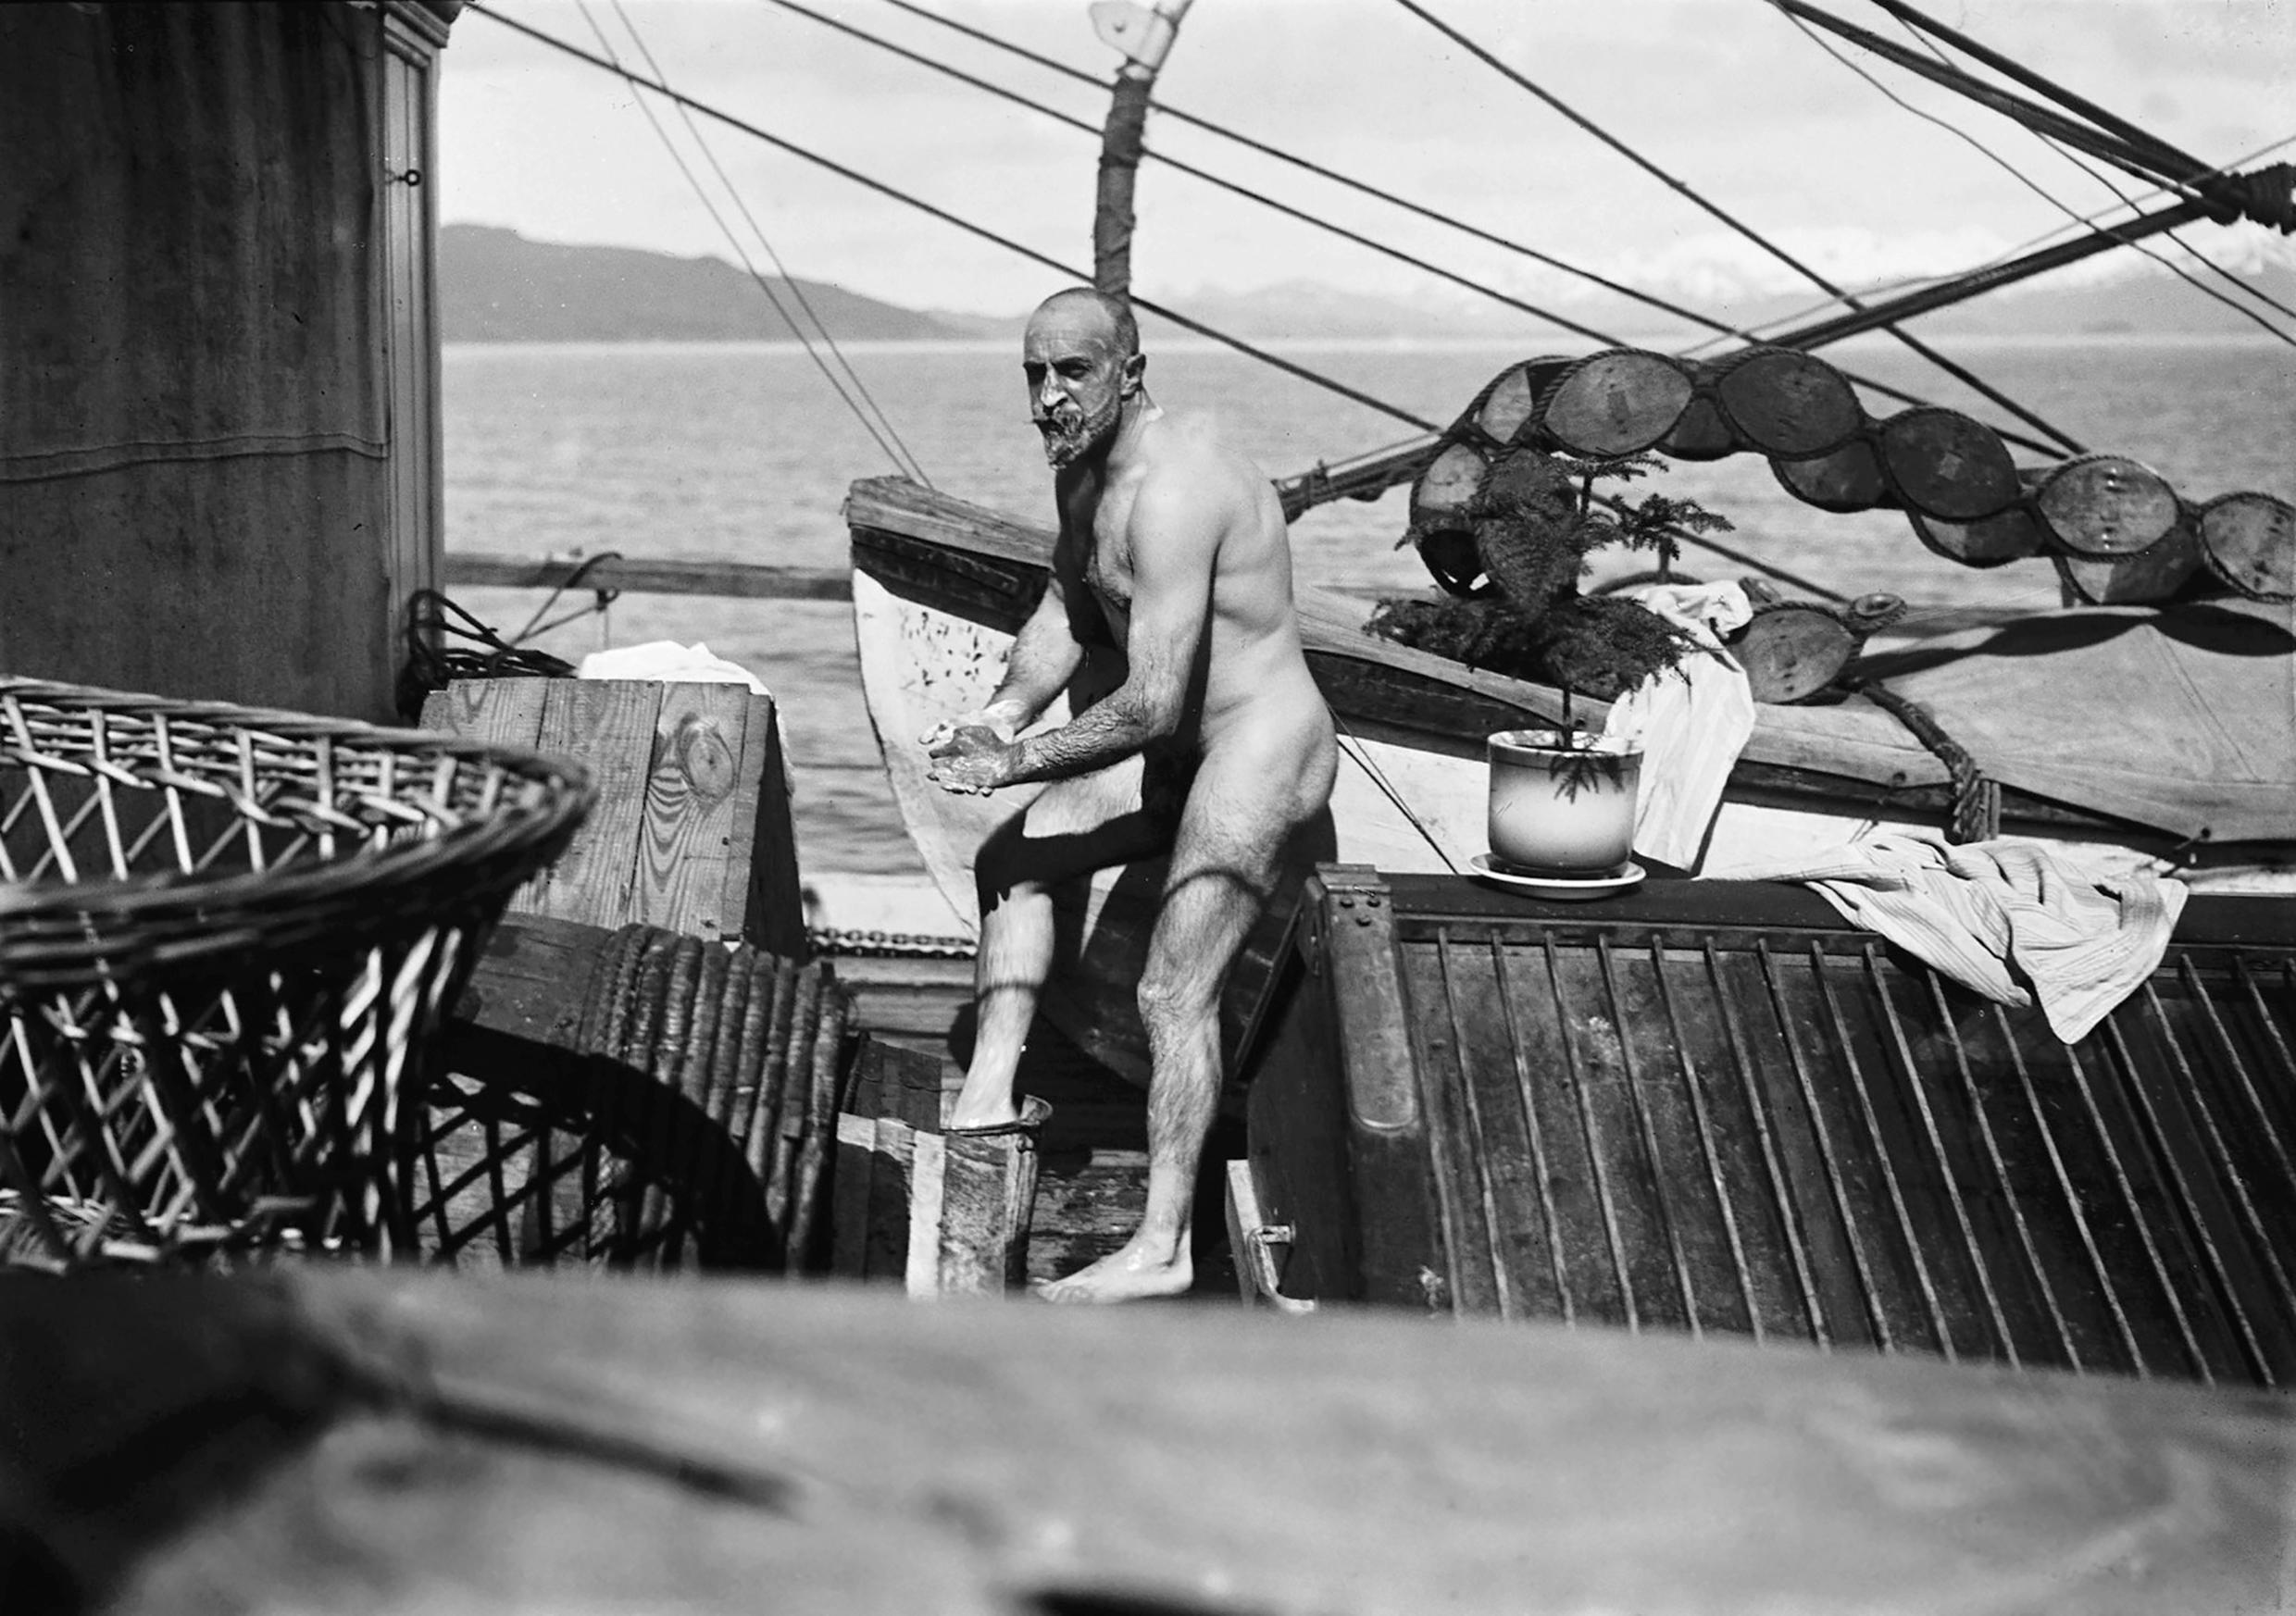 French explorer Jean Baptiste Charcot, taking a bath on board the ship Pourquoi Pas in February 1909.